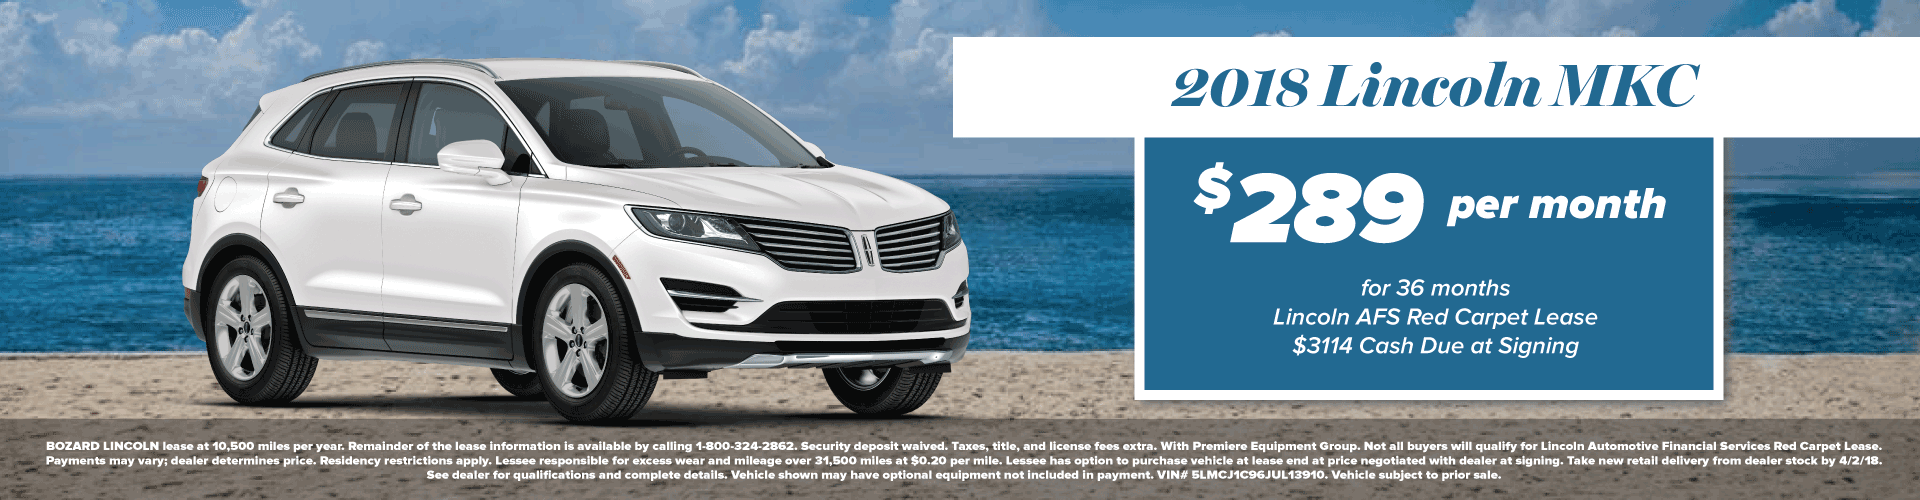 2018 Lincoln MKC Lease Offer